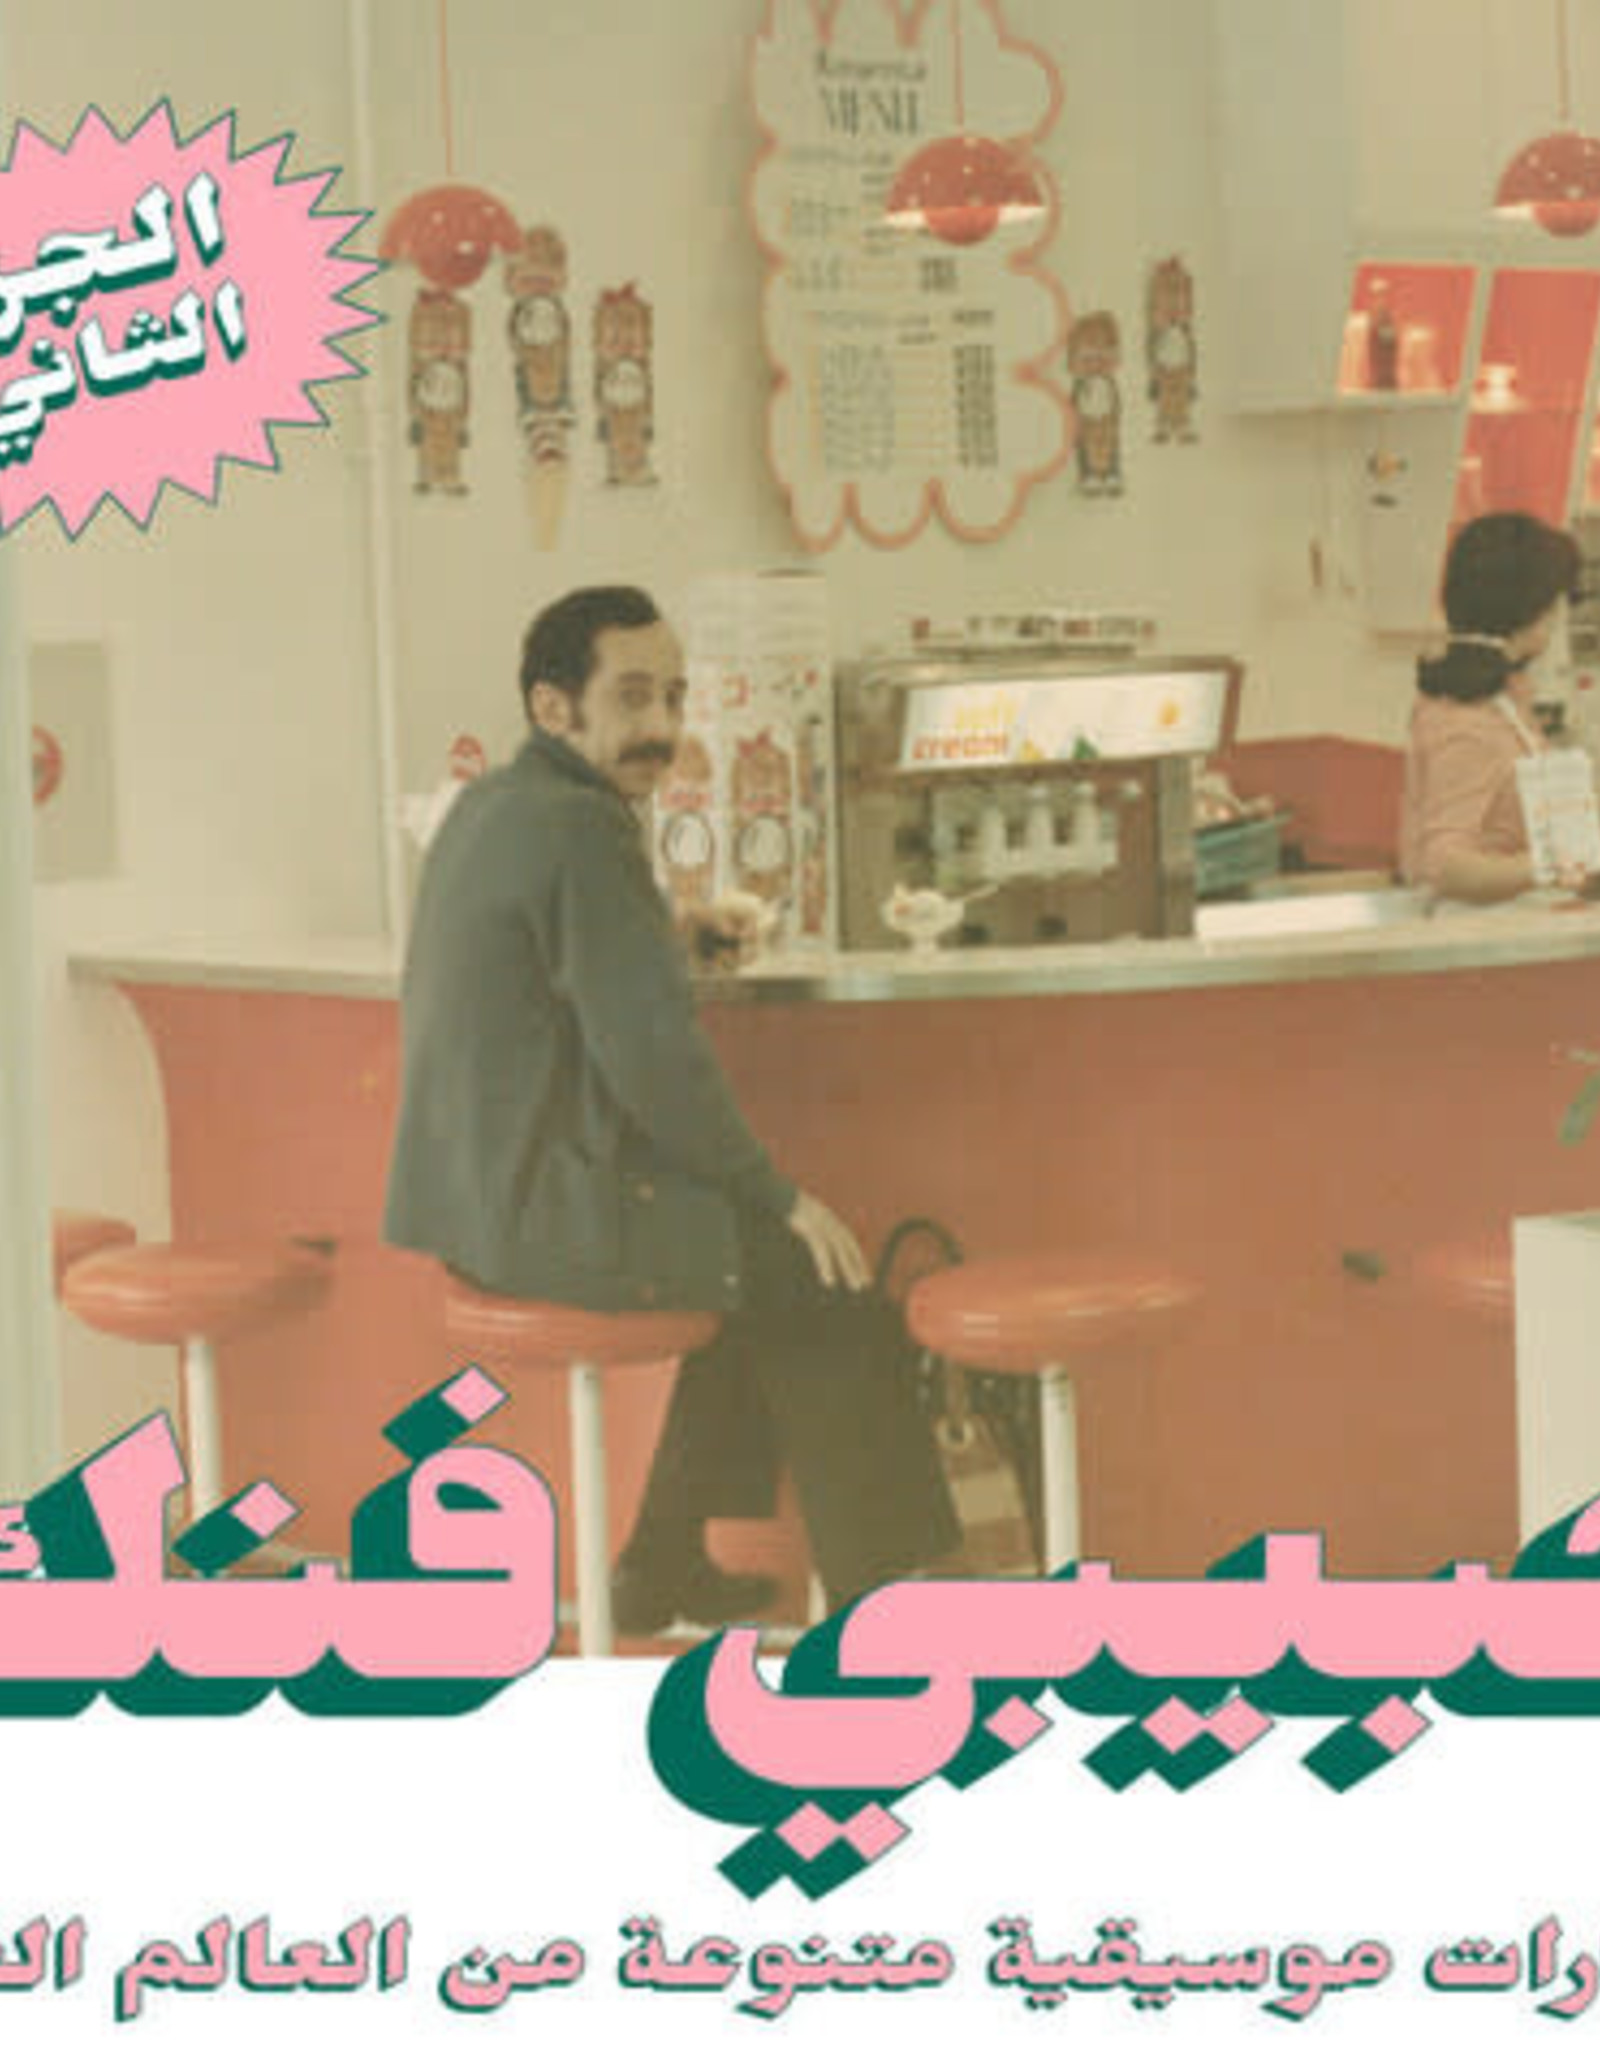 Habibi Funk 2: An Eclectic Selection From Arab World Part 2